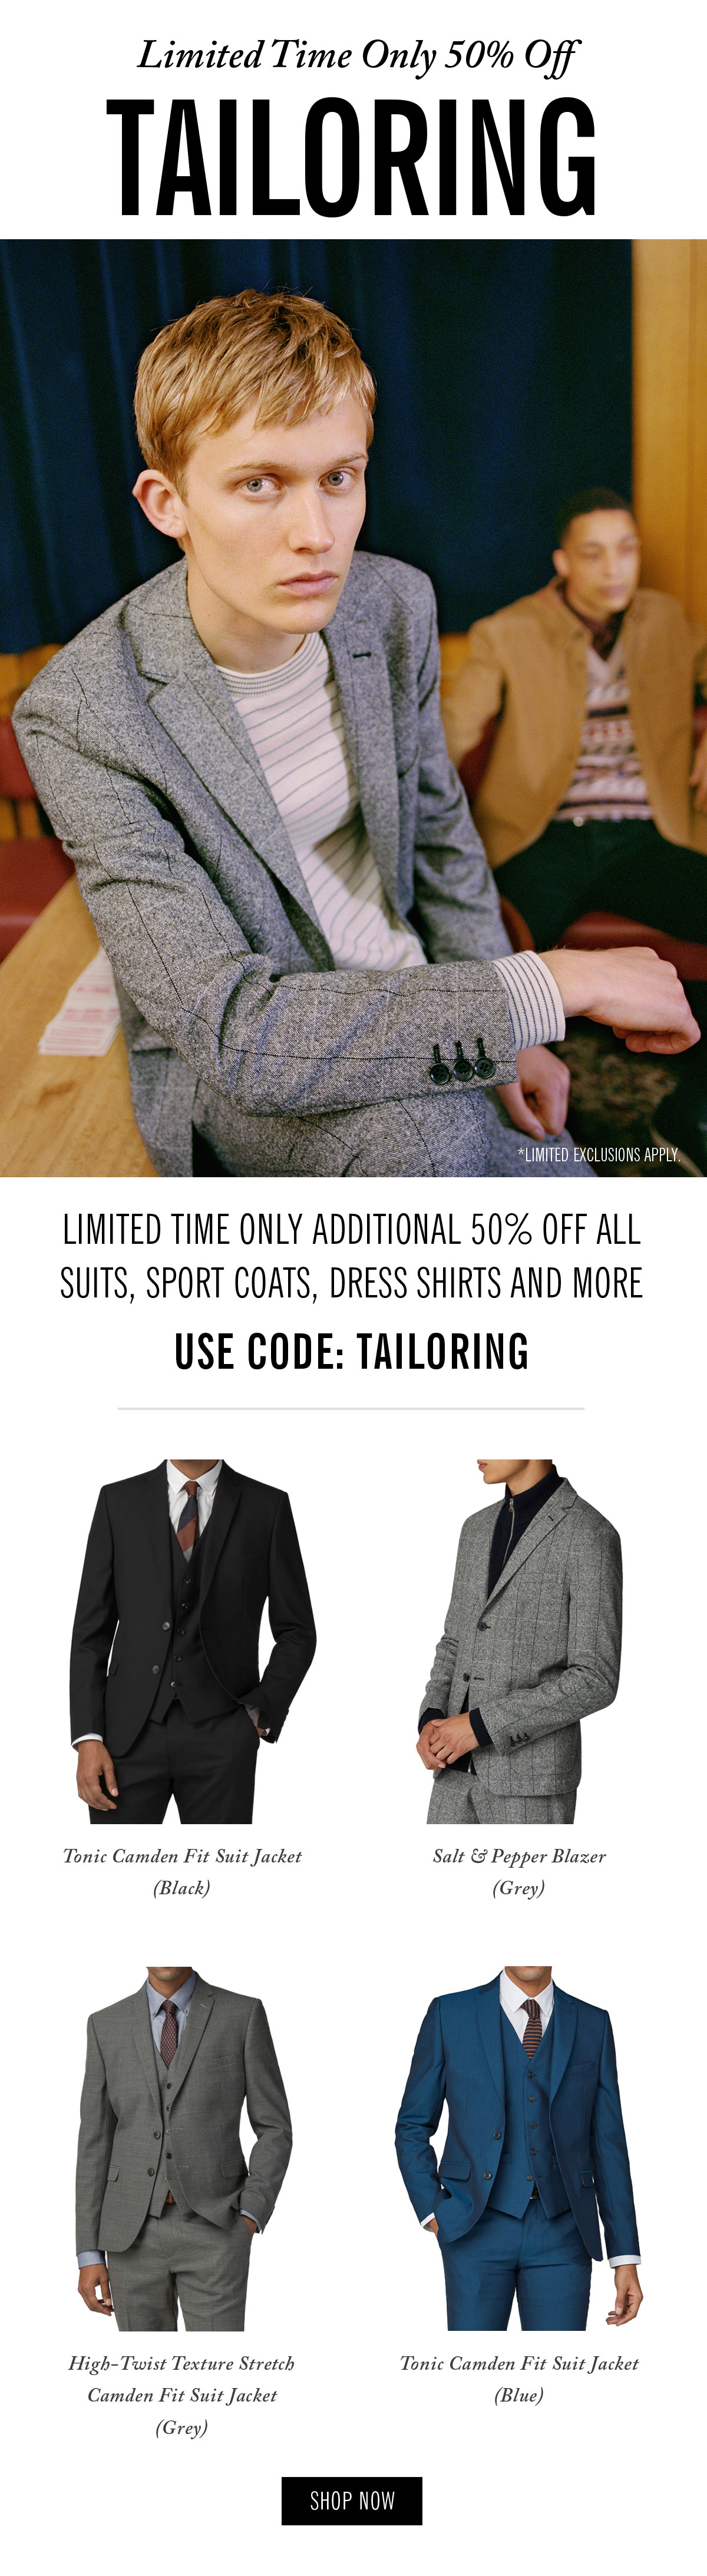 Limited Time Only: 50% Off Tailoring - All Suits, Sport Coats, Dress Shirts and More | Use Code: TAILORING | Limited exclusions apply